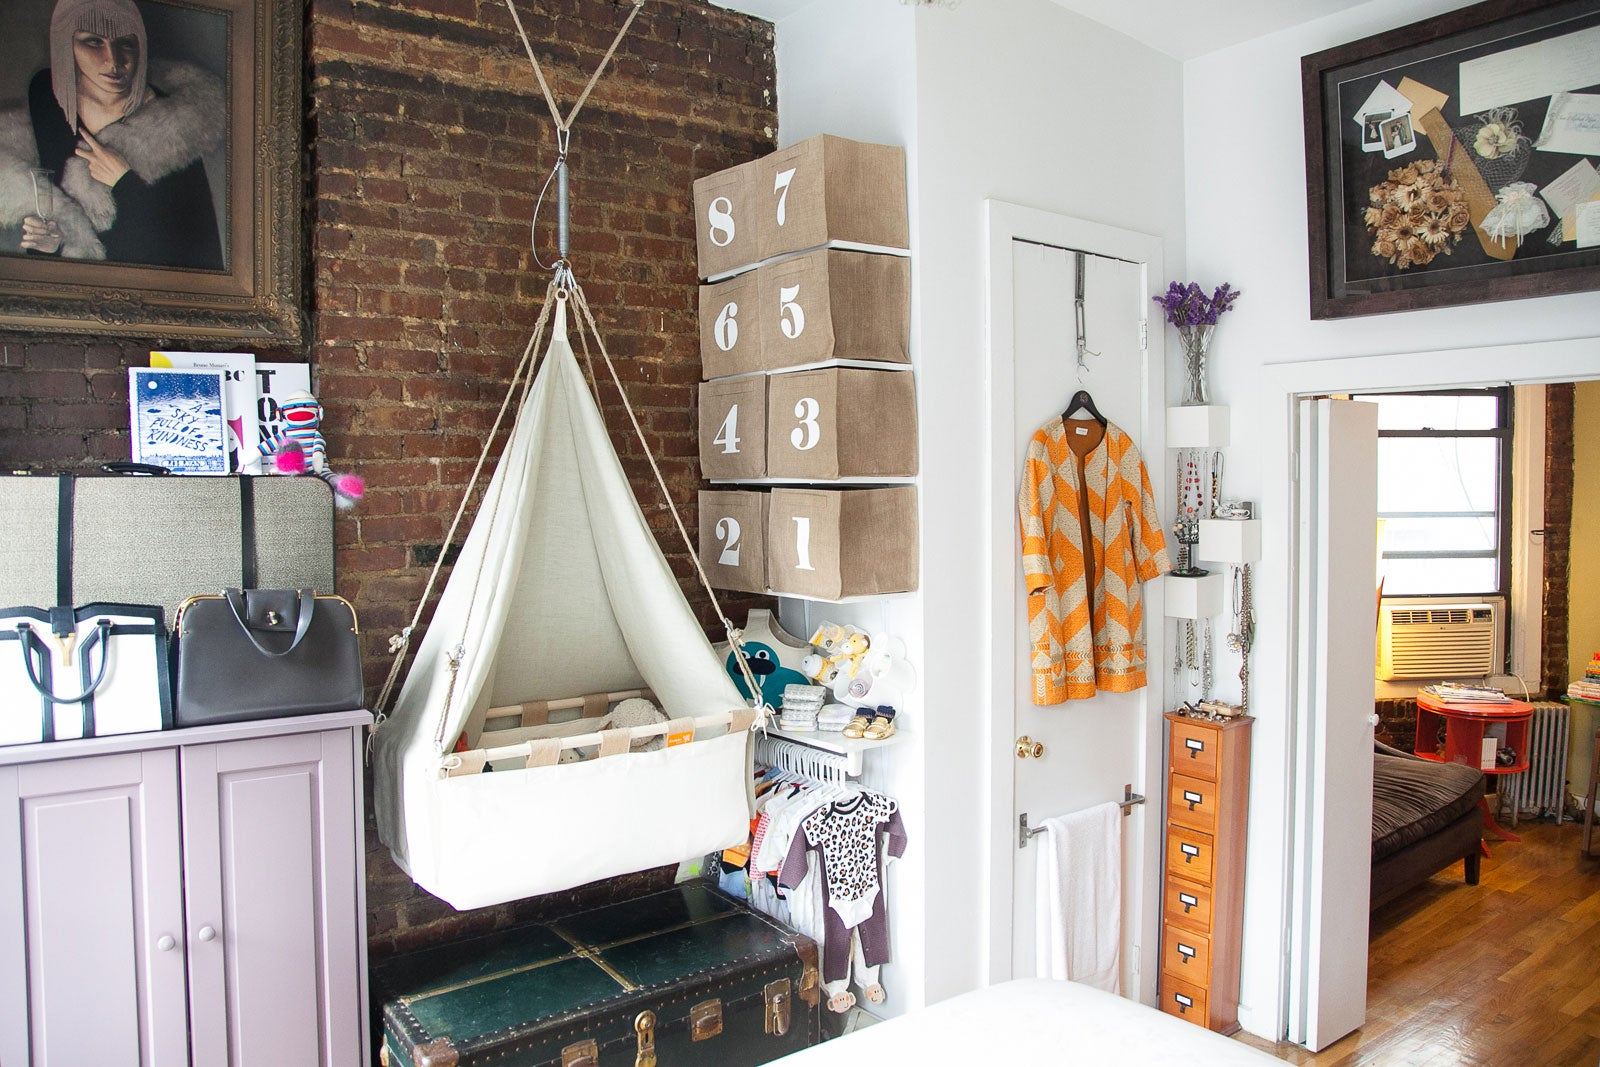 small space living tips for couples moving in together